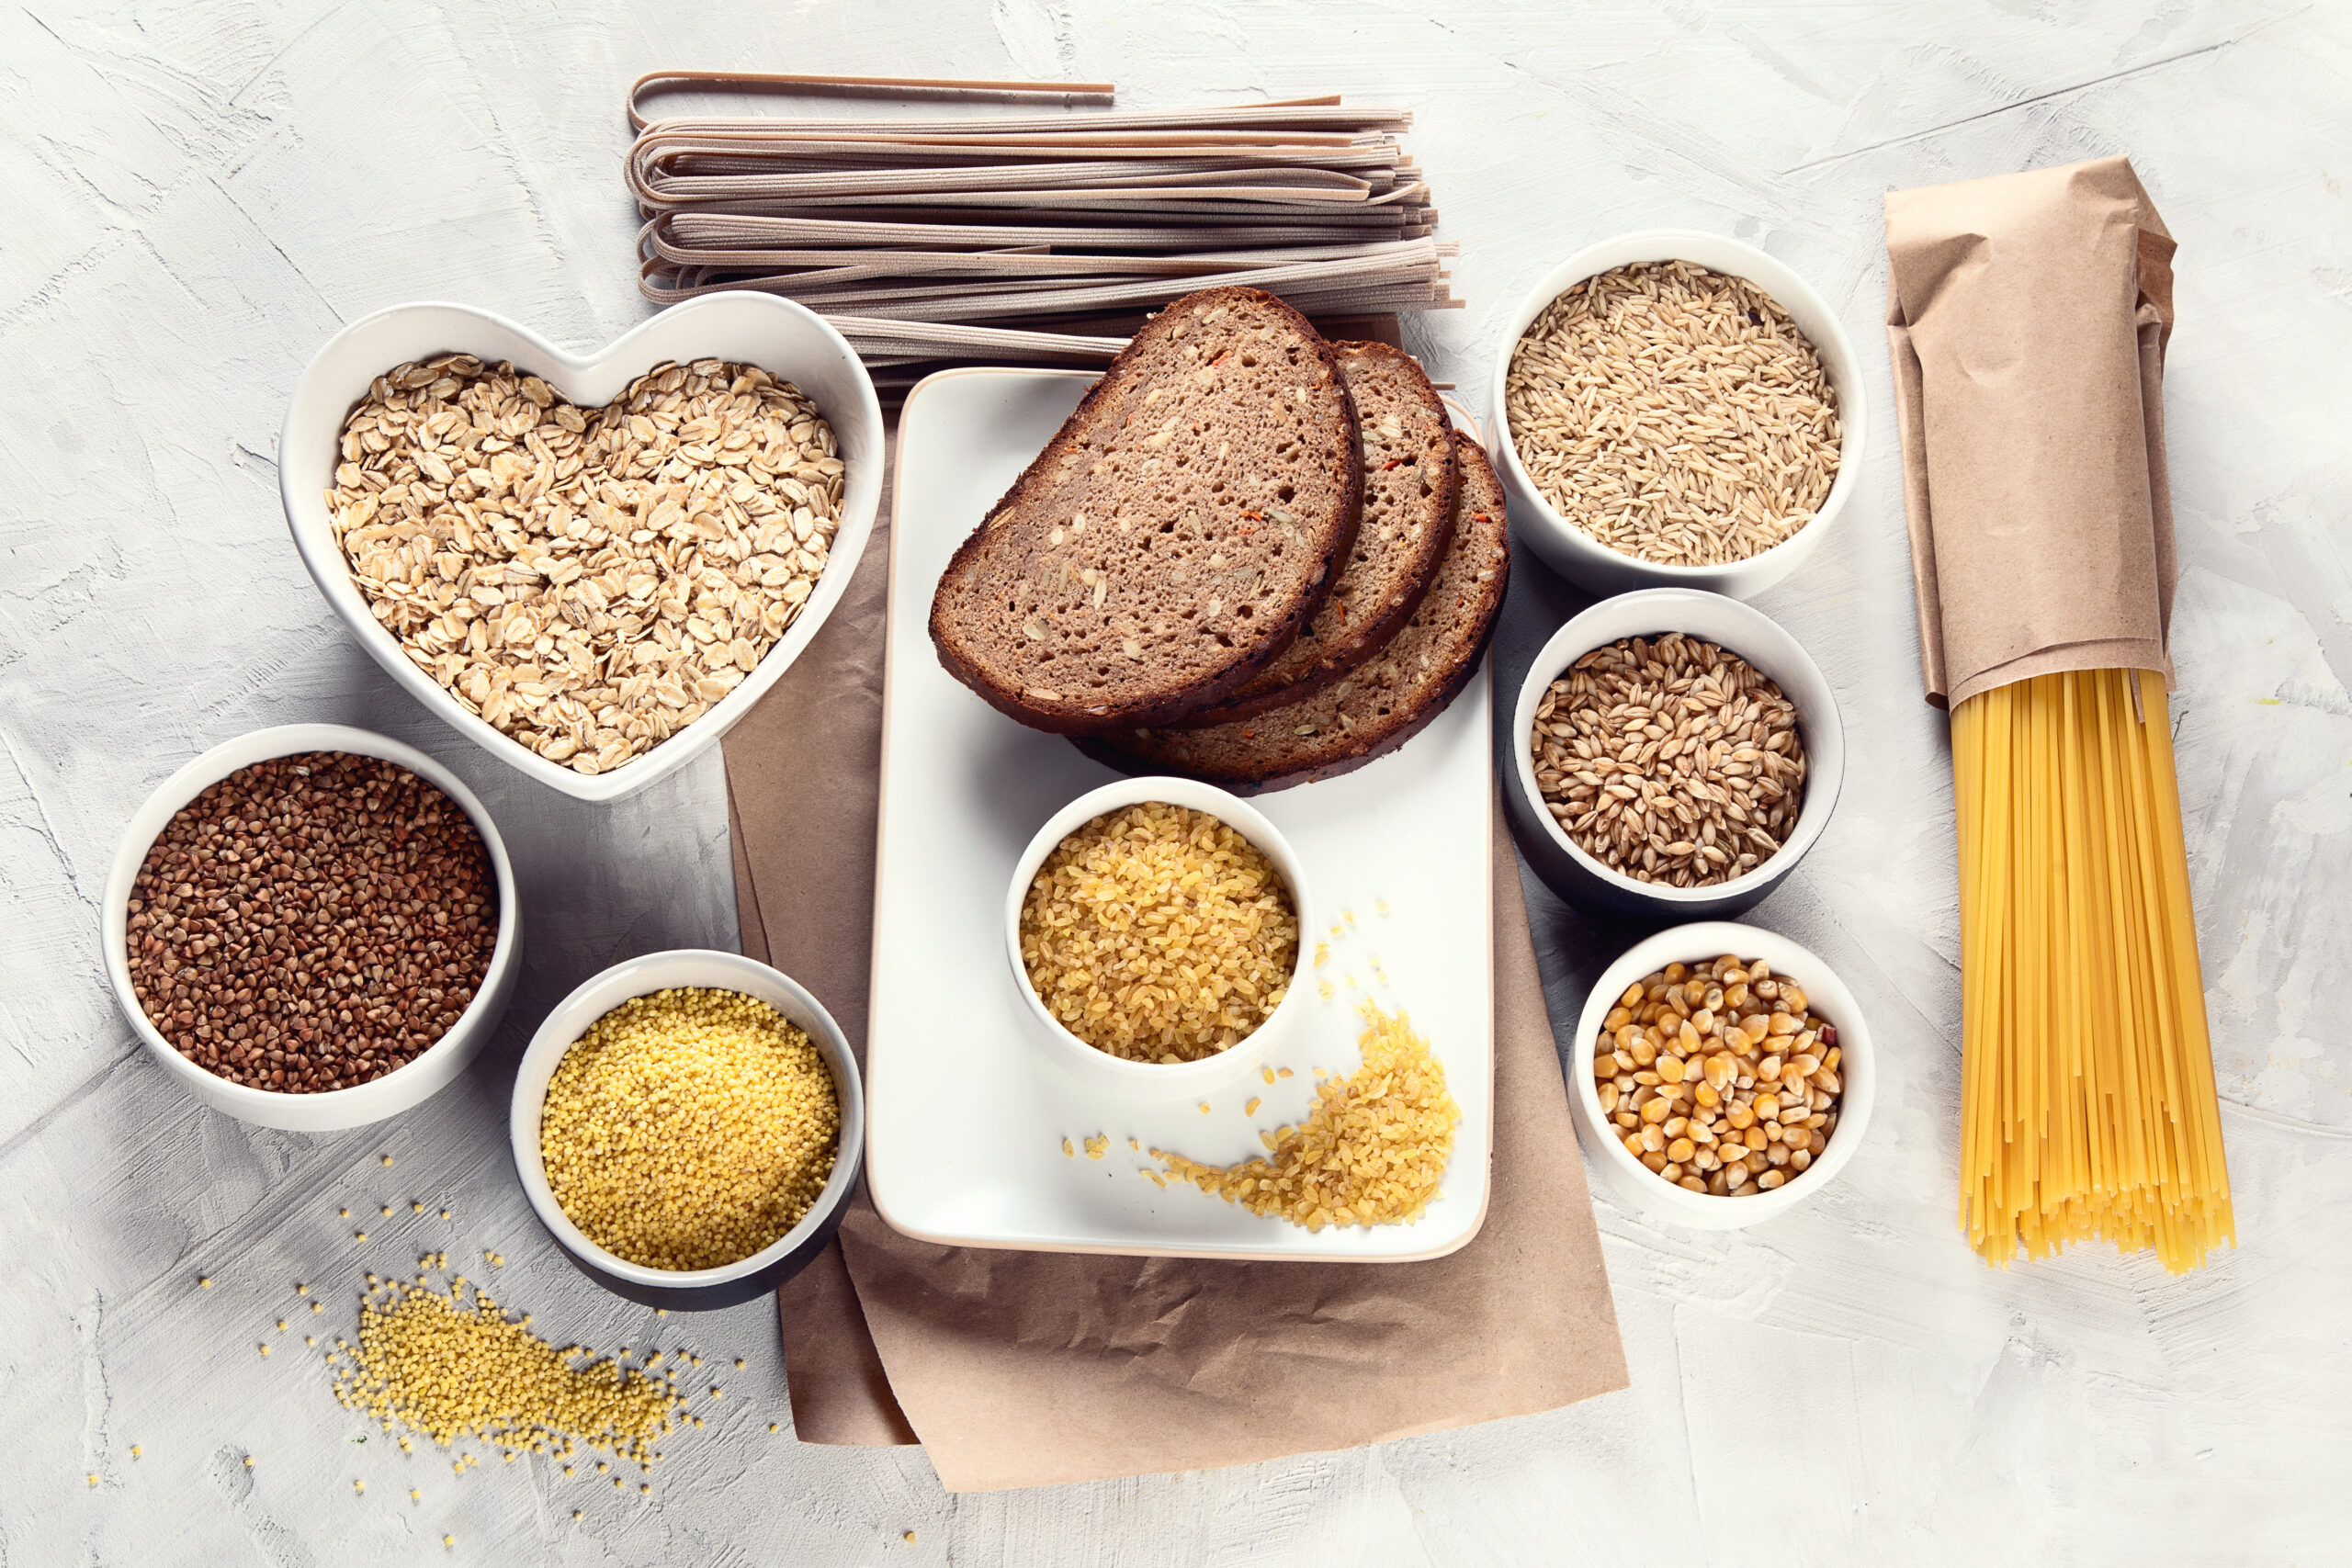 Enjoy grain foods 3-4 times a day, choosing at least half as whole grain or high fibre